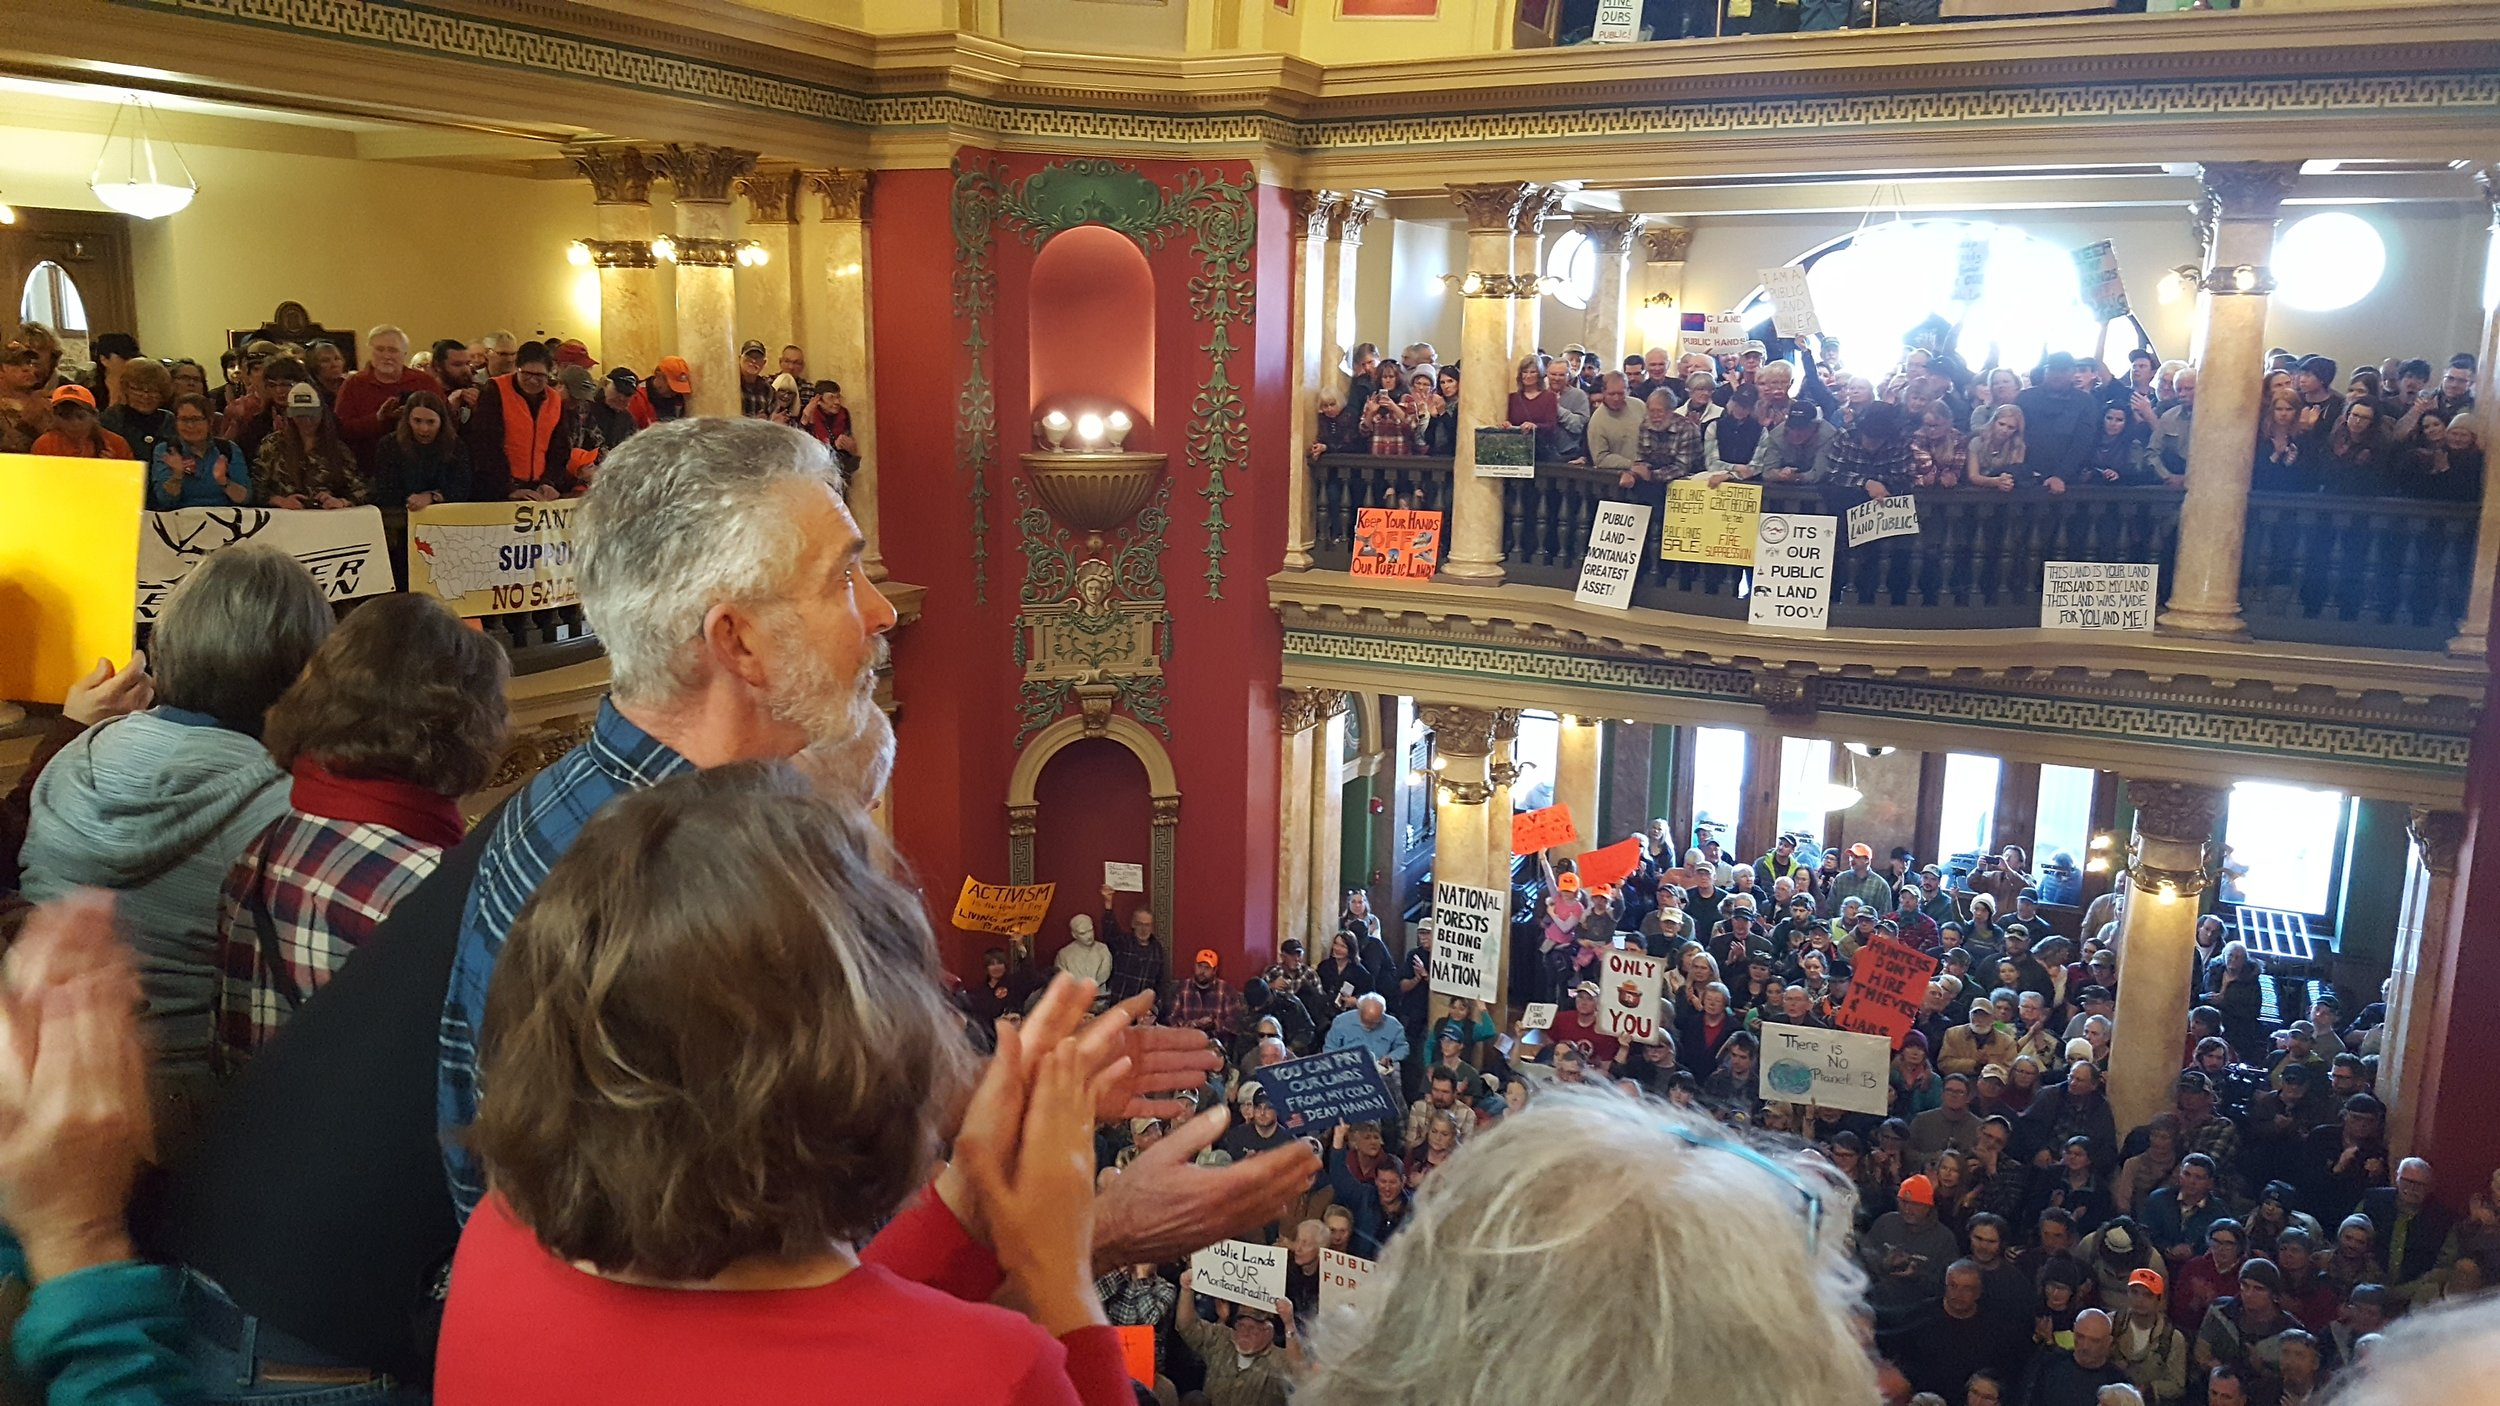 More than 1,500 Montanans turned out for a public lands rally at the Capitol in Helena on Jan. 30. (Photo GYC.)